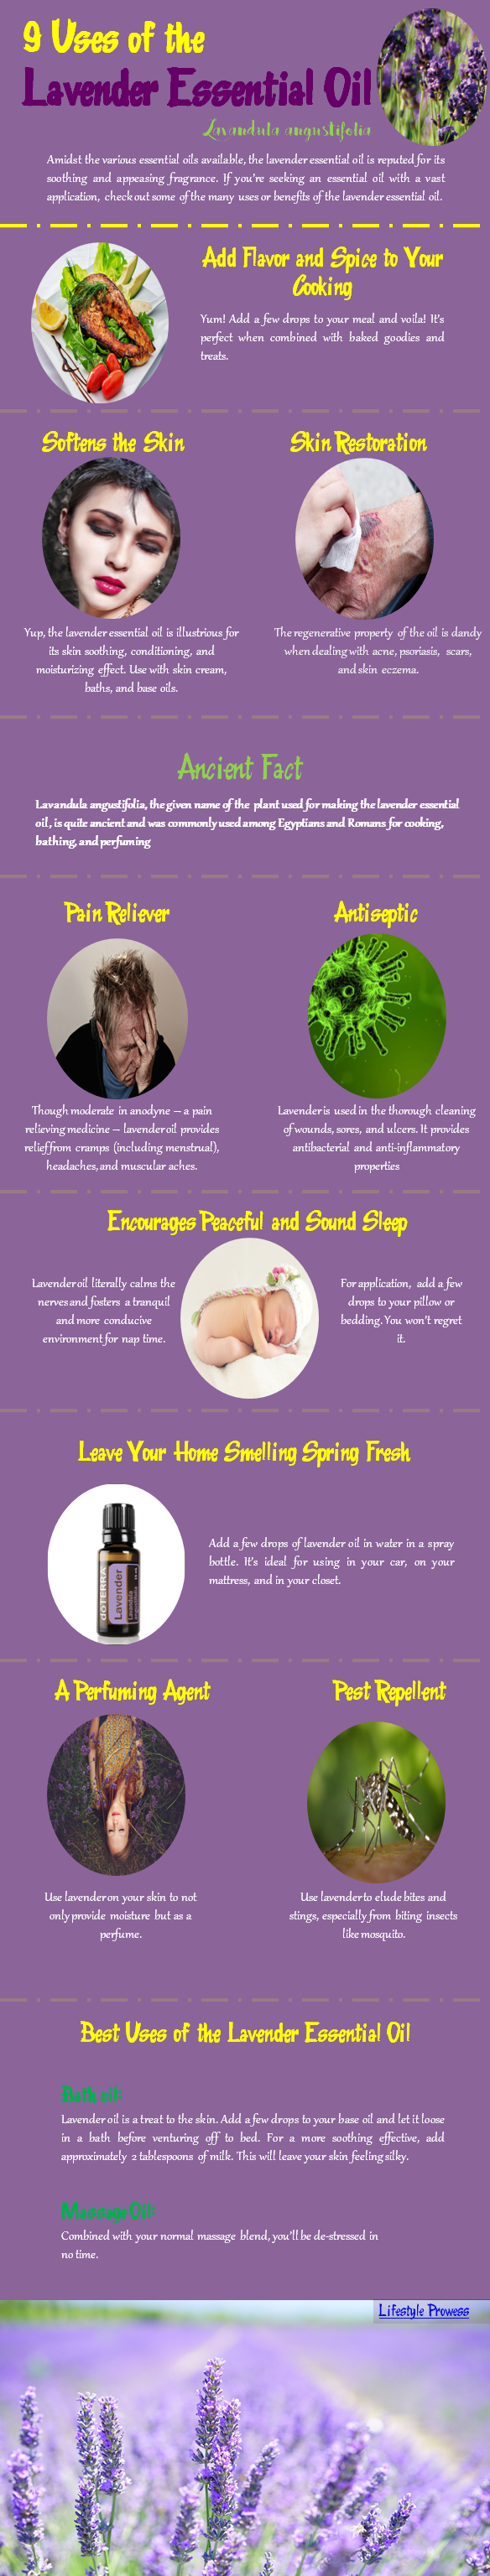 9 Uses of the Lavender Essential Oil